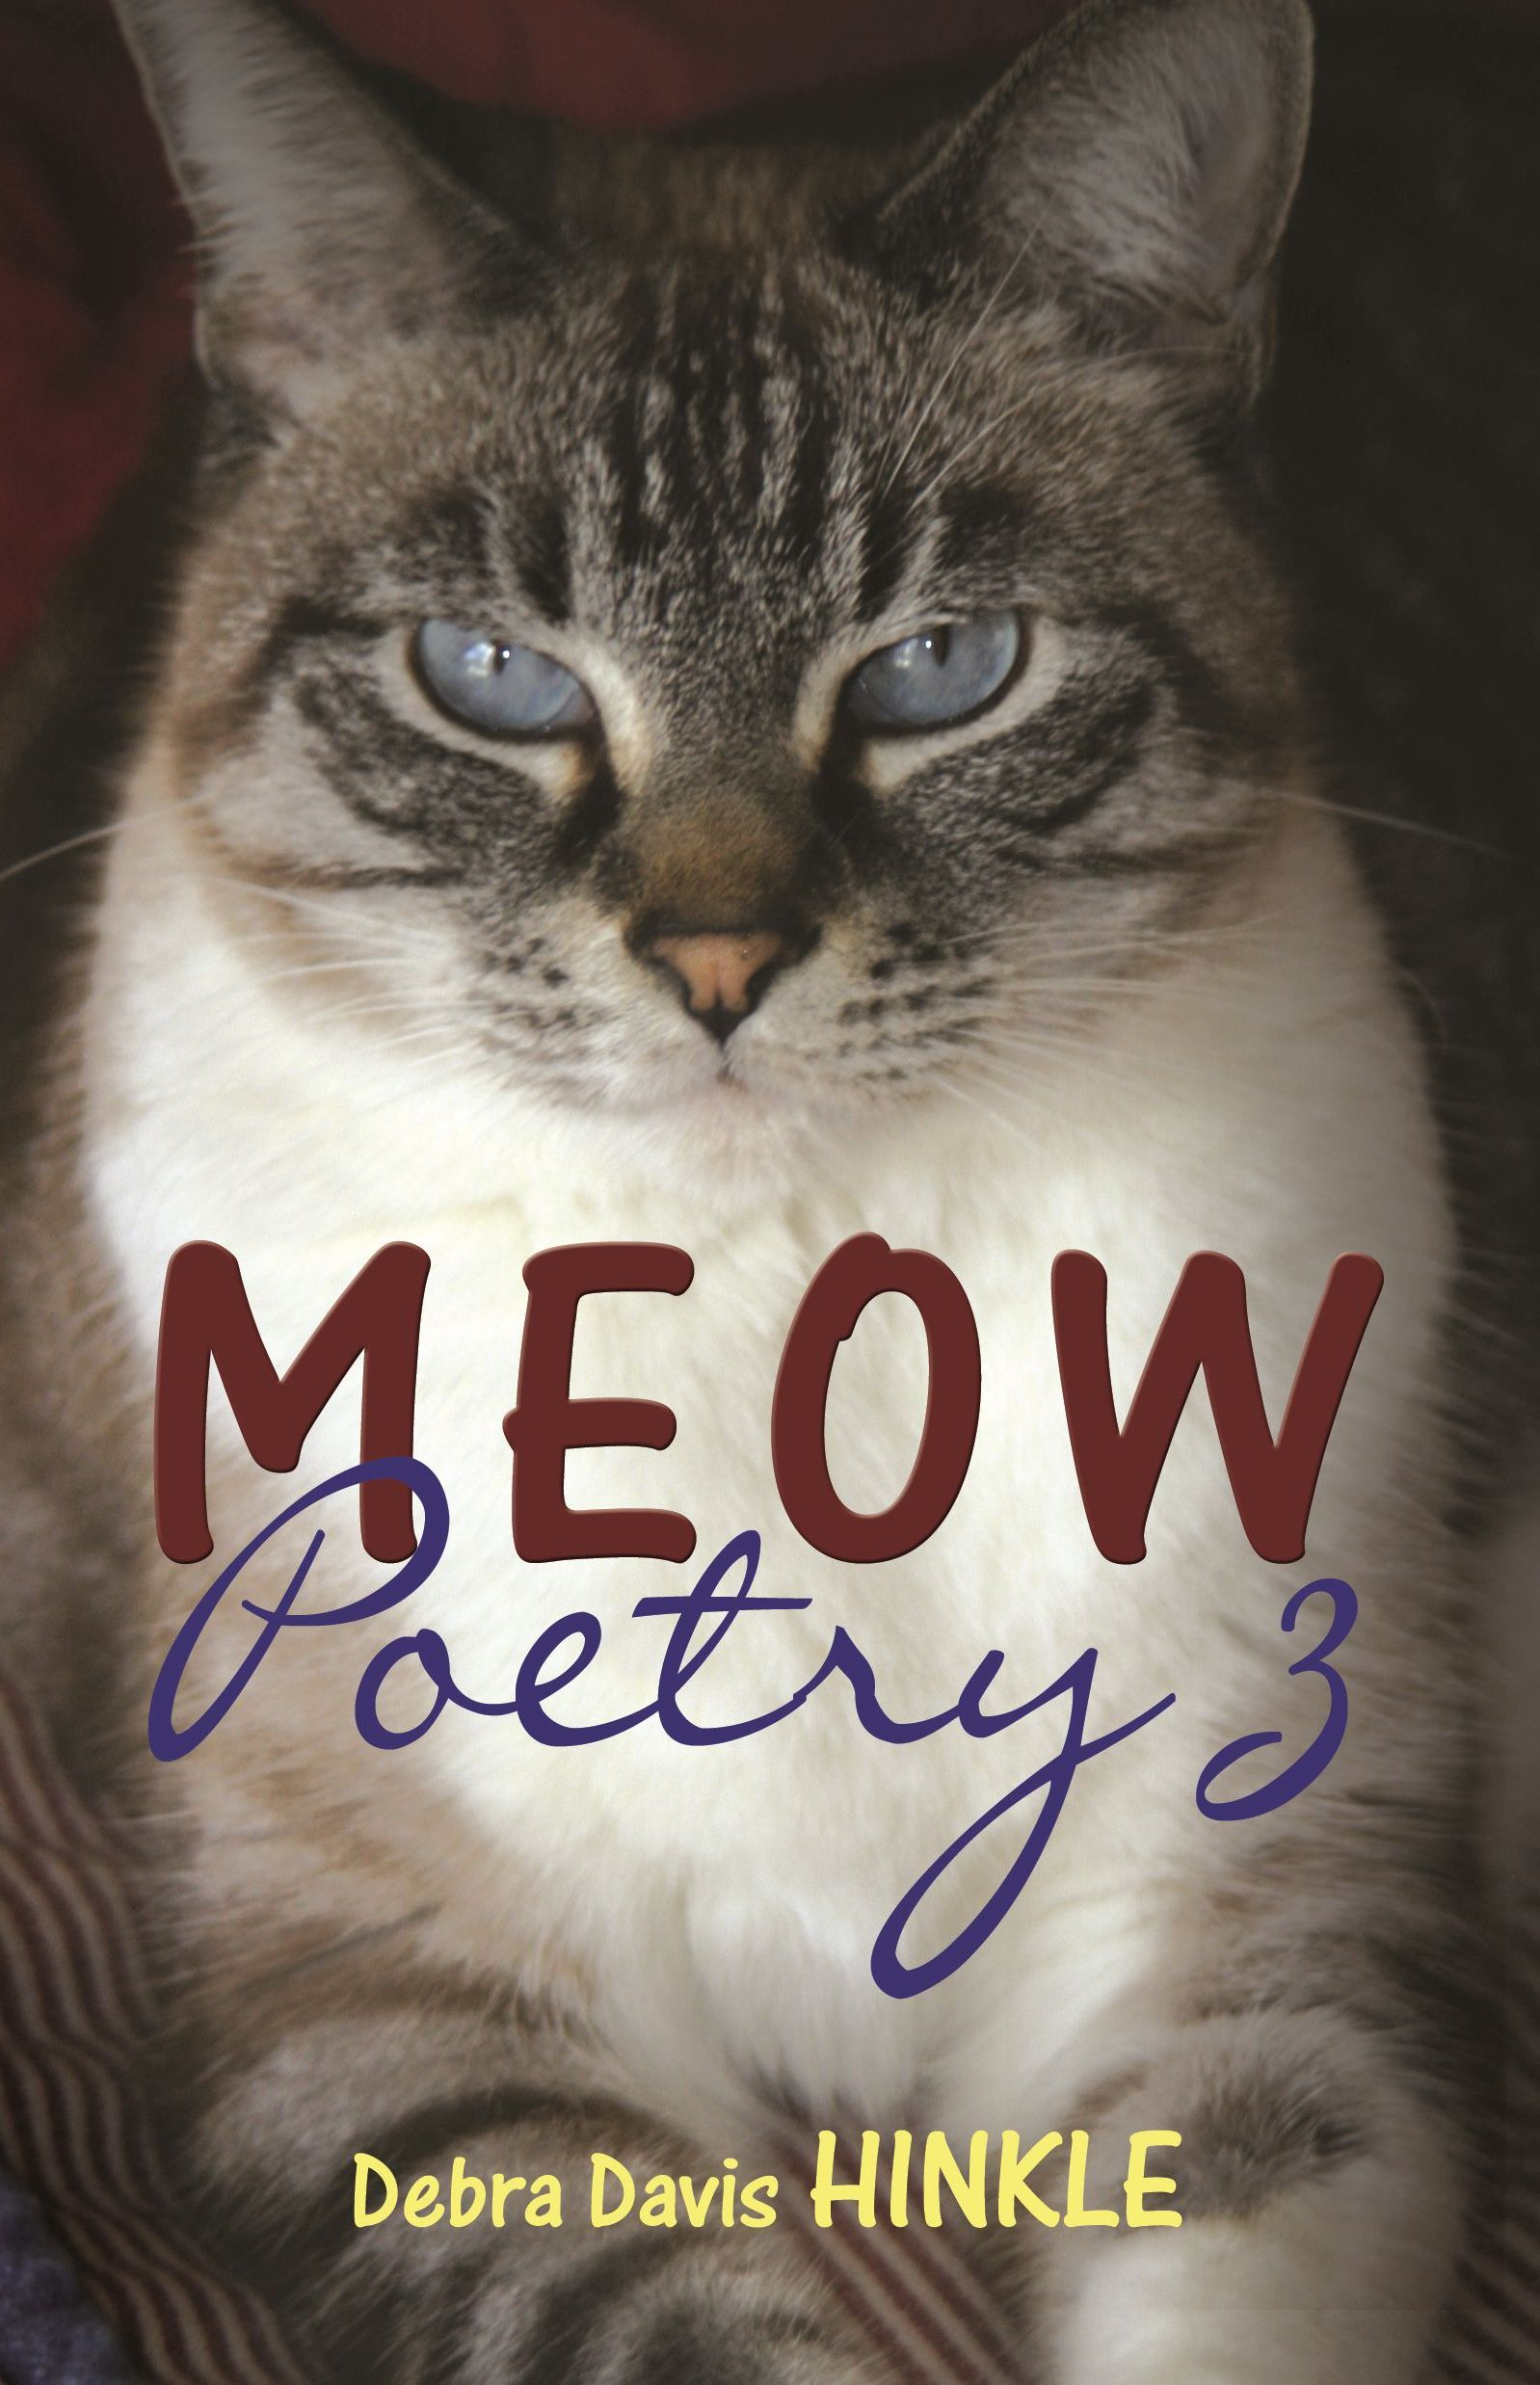 Meow Poetry 3